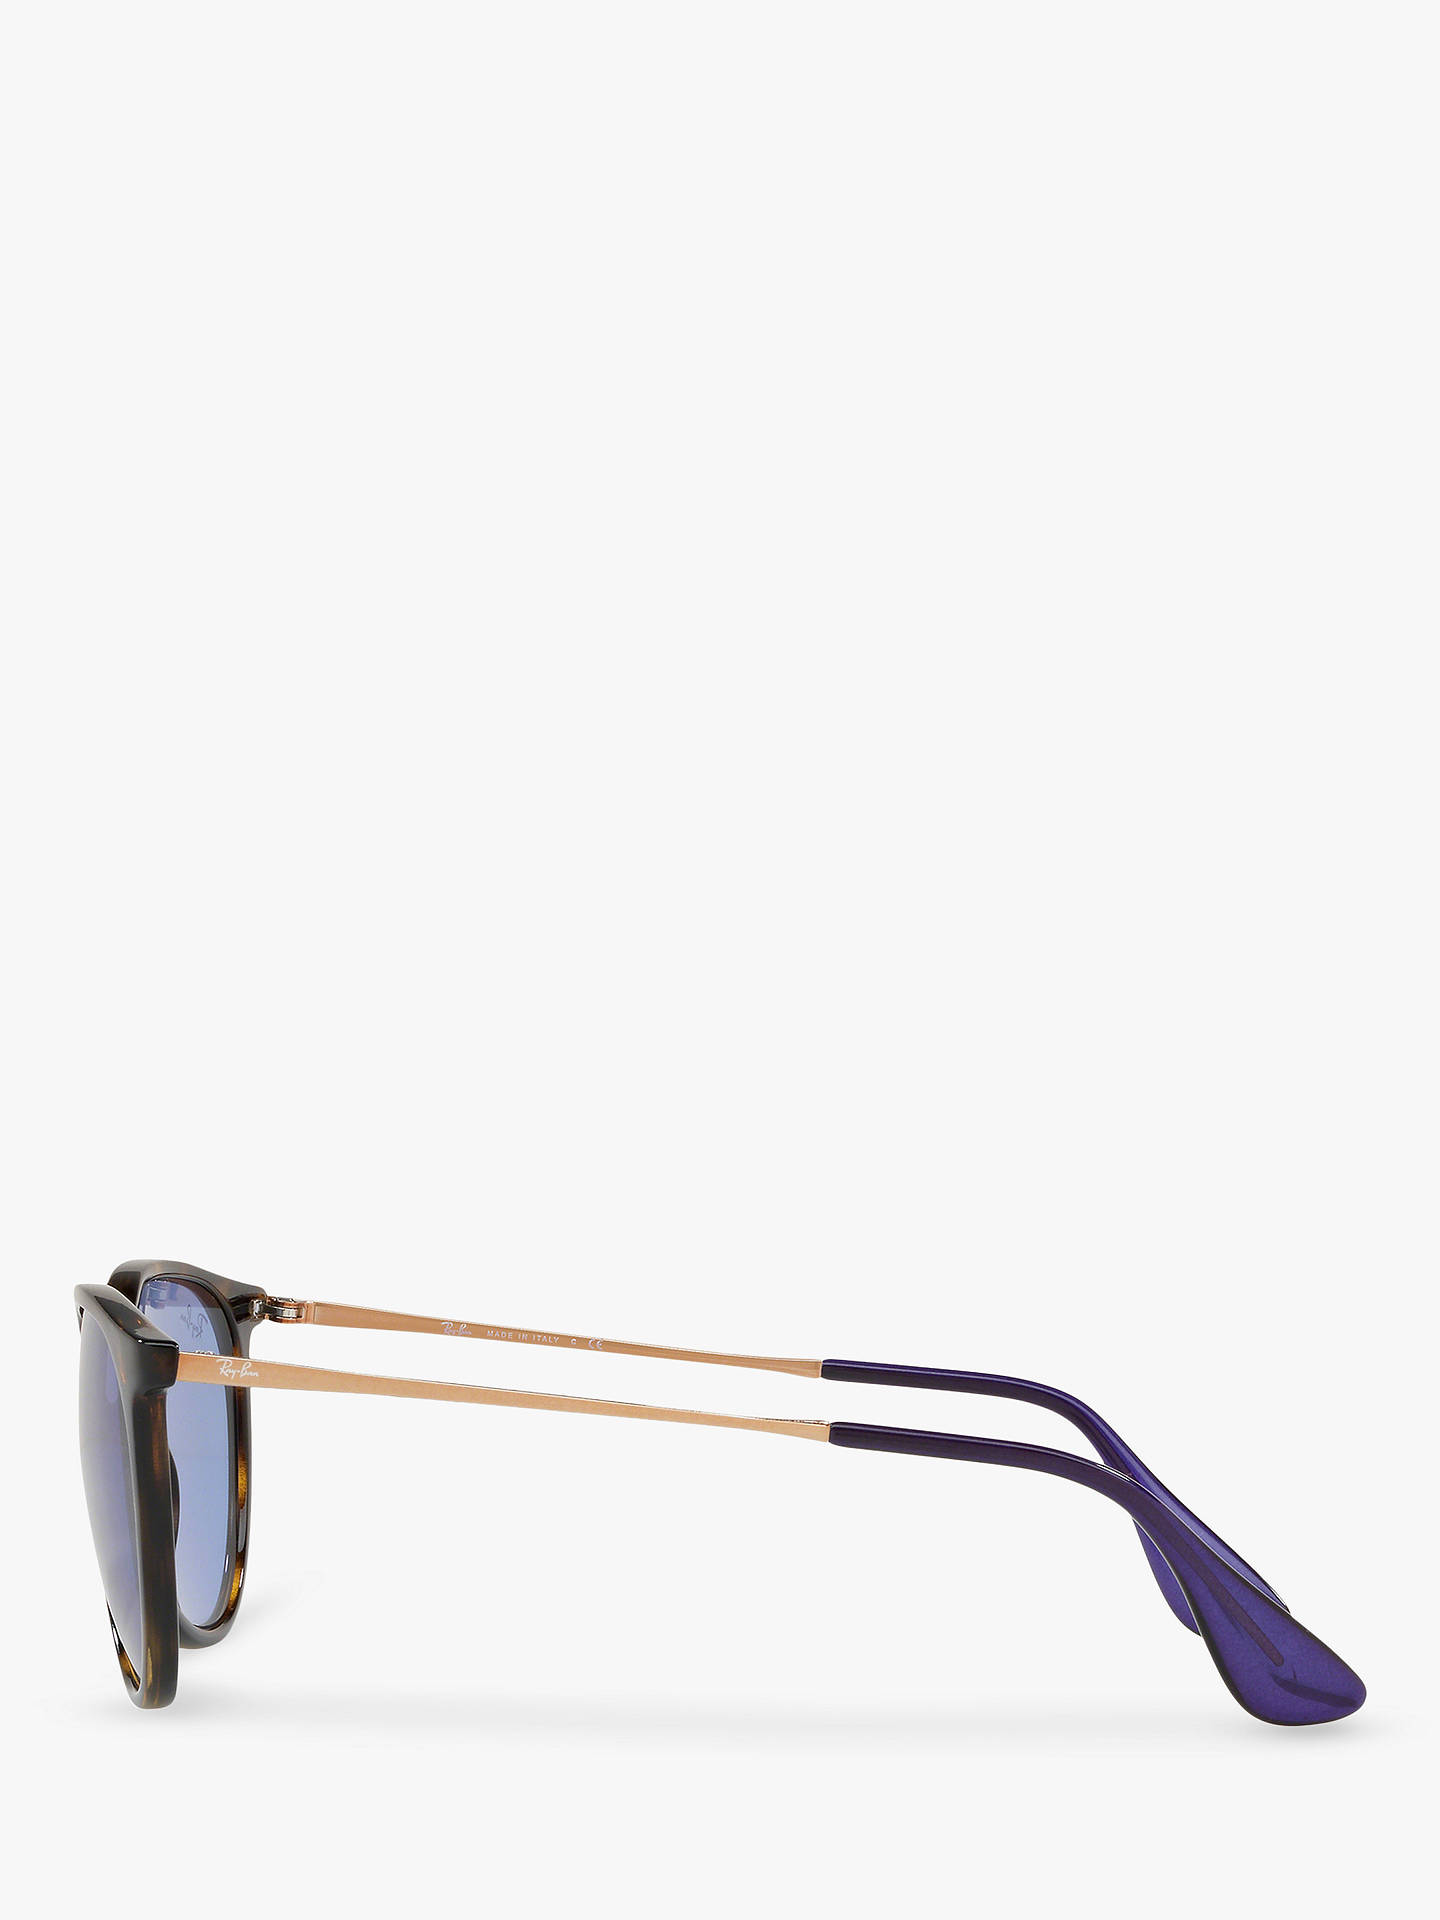 BuyRay-Ban RB4171 Women's Erika Rectangular Sunglasses, Gold/Black/Blue Gradient Online at johnlewis.com